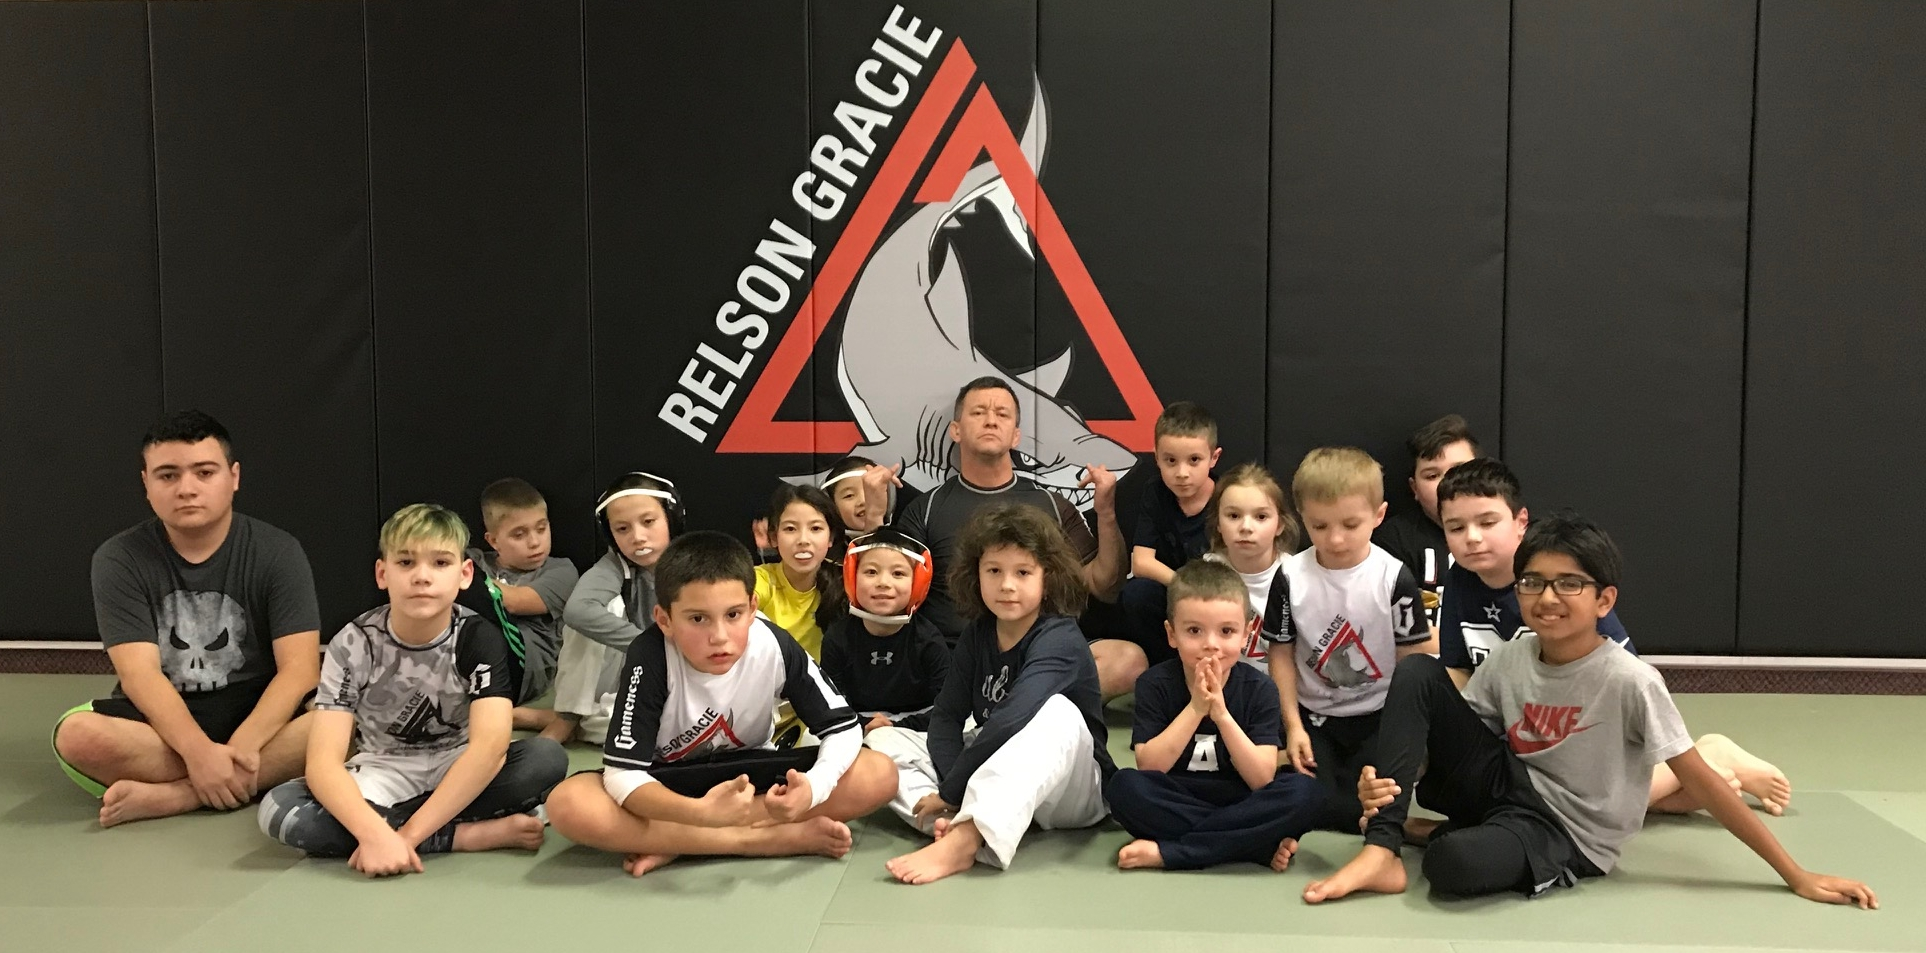 We are proud to be a Relson Gracie school!